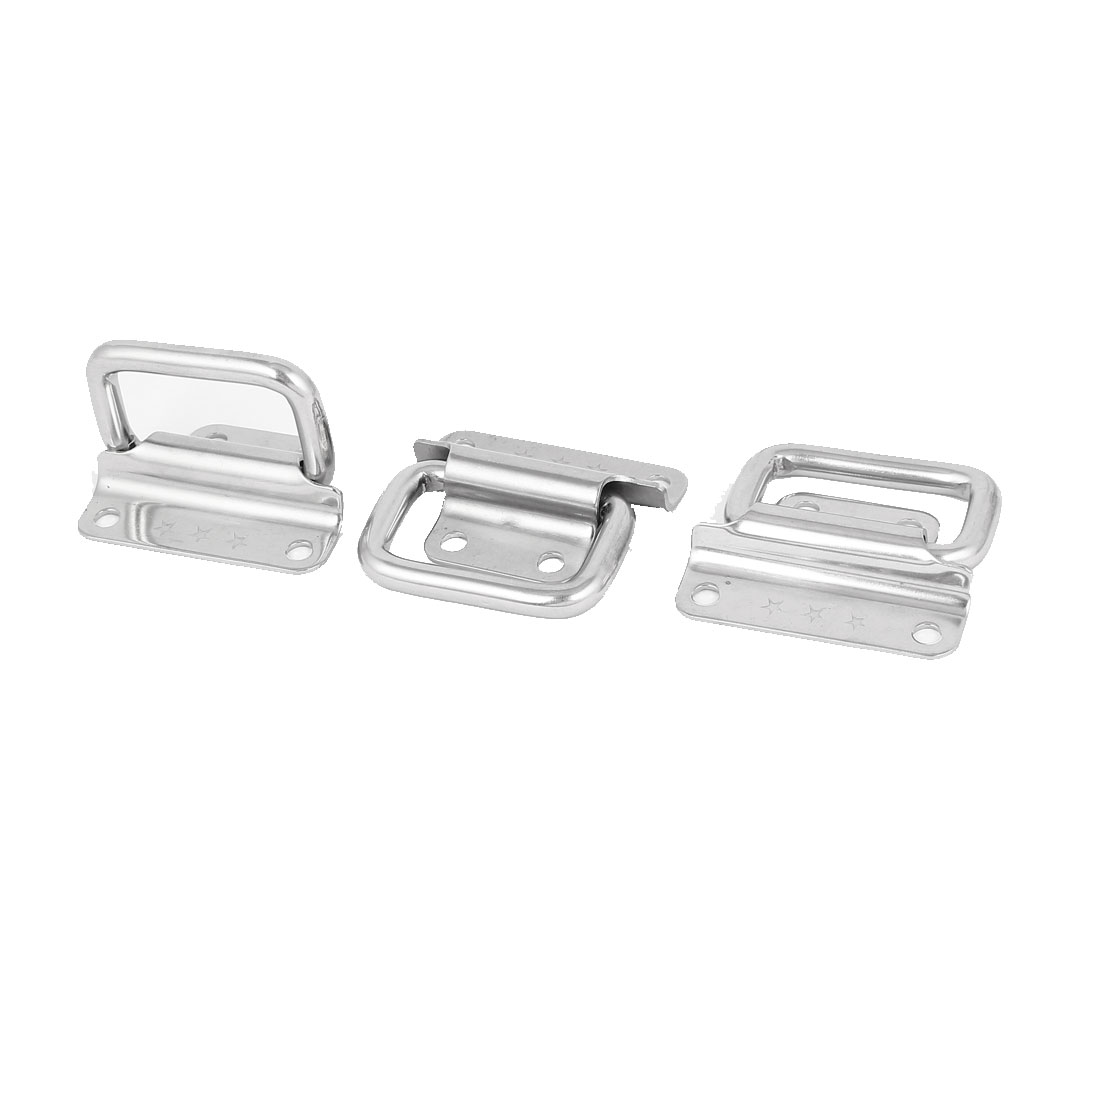 "Toolbox Stainless Steel 90-Degree Puller Chest Handle Silver Tone 2"" Length 3pcs"